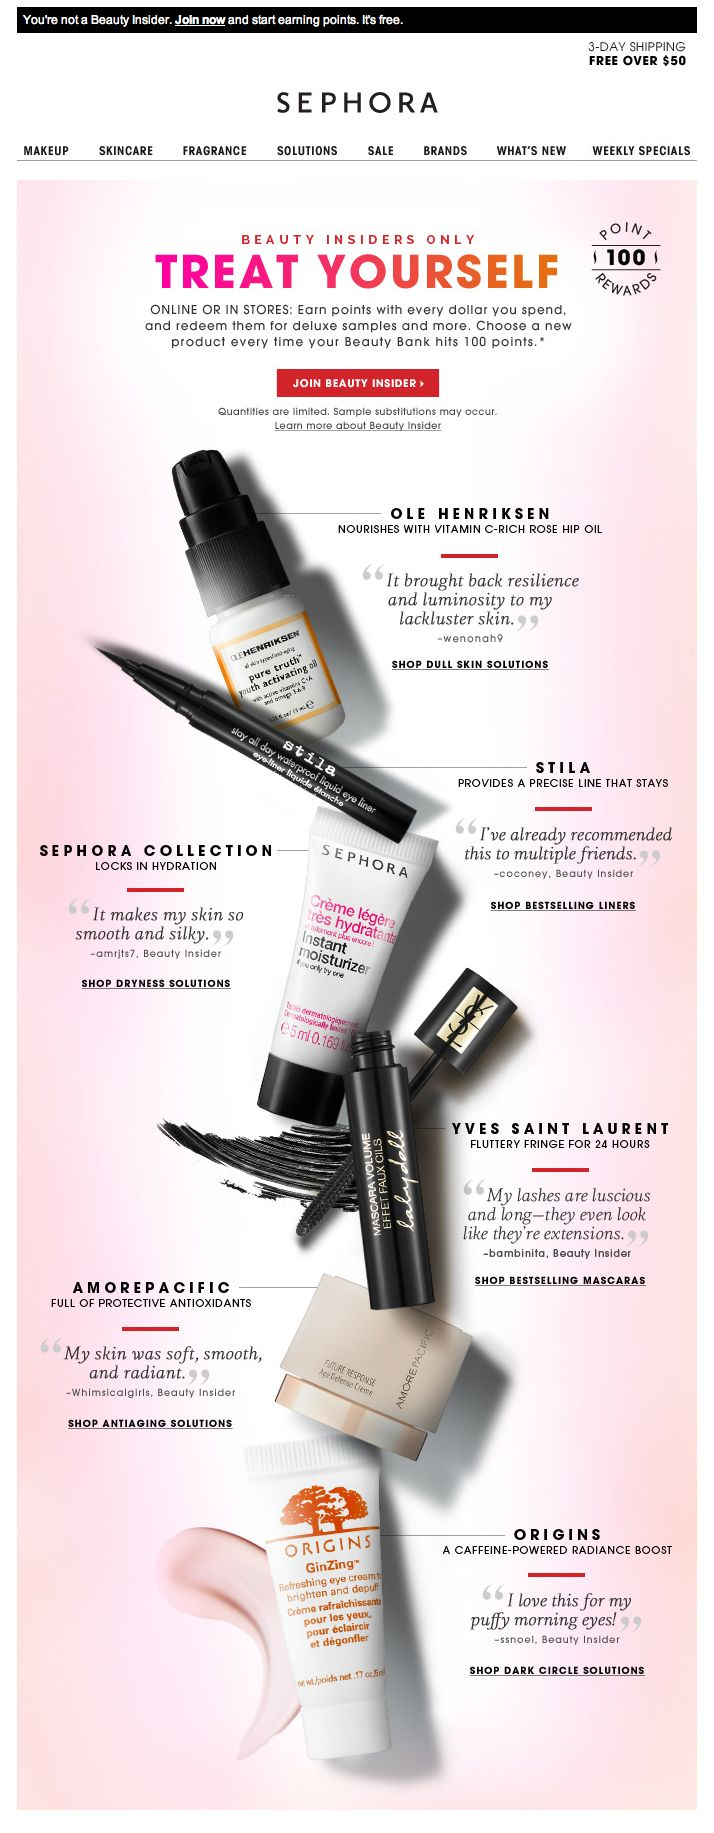 Sephora Email Newsletter Design - Beautiful Product Display